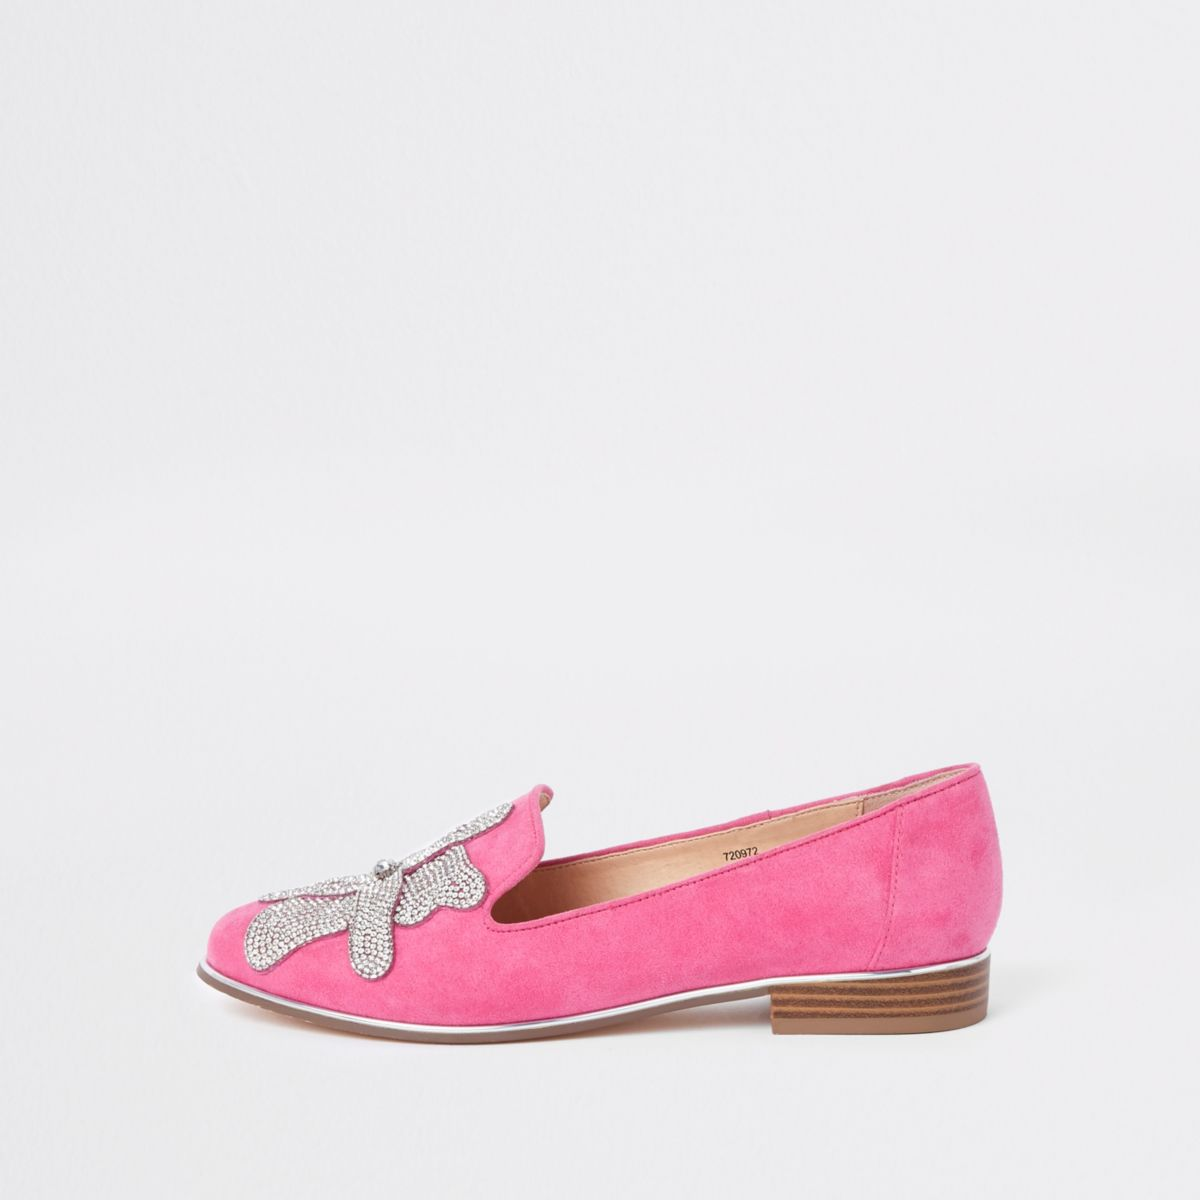 Pink floral diamante embellished loafers